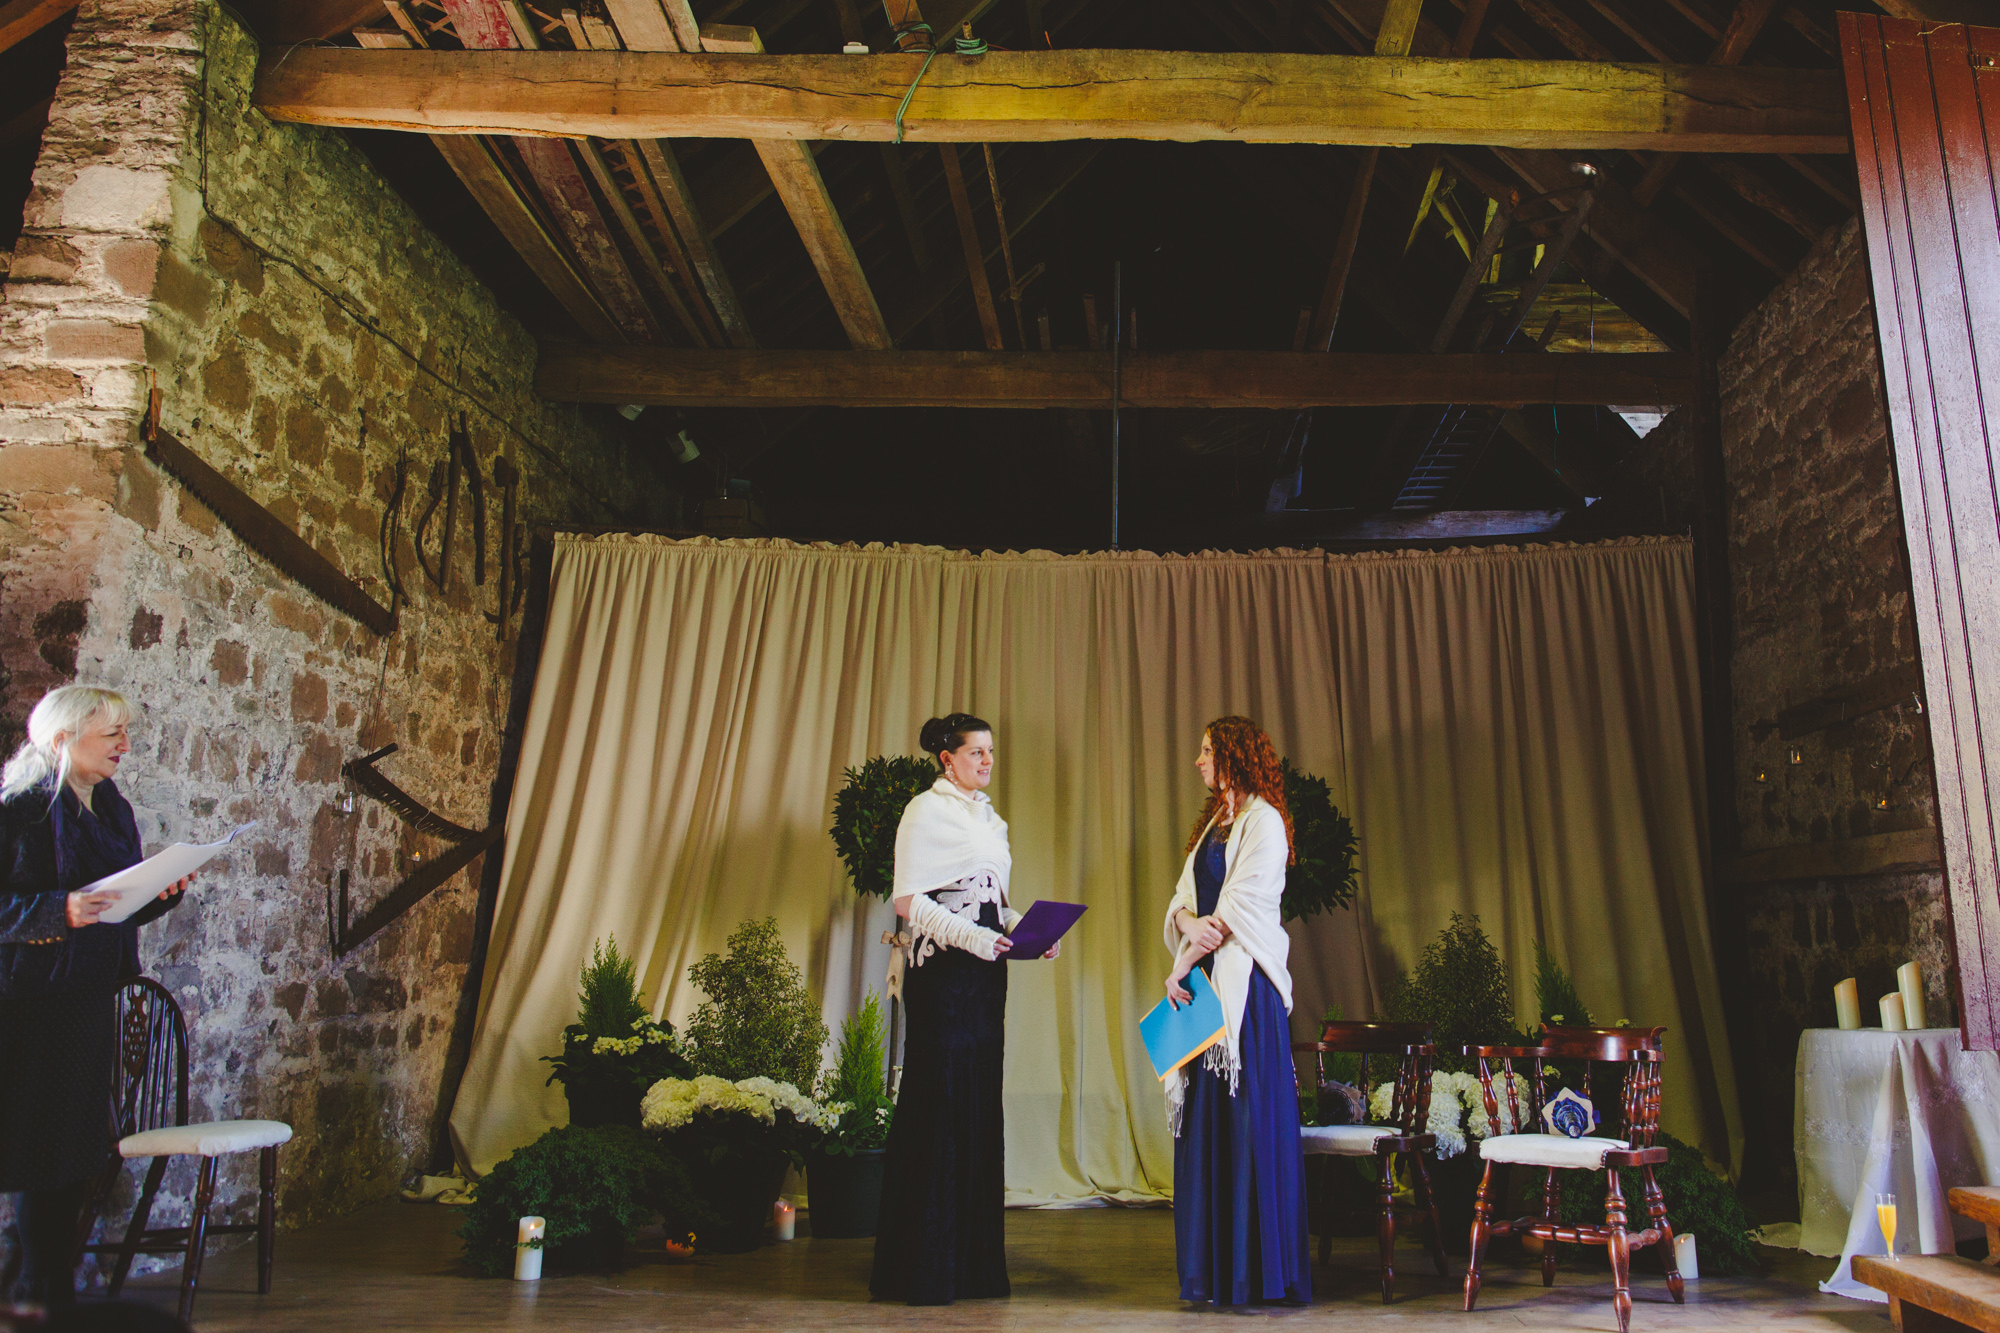 usk-castle-alternative-wedding-photographer-uk-camera-hannah-5.jpg